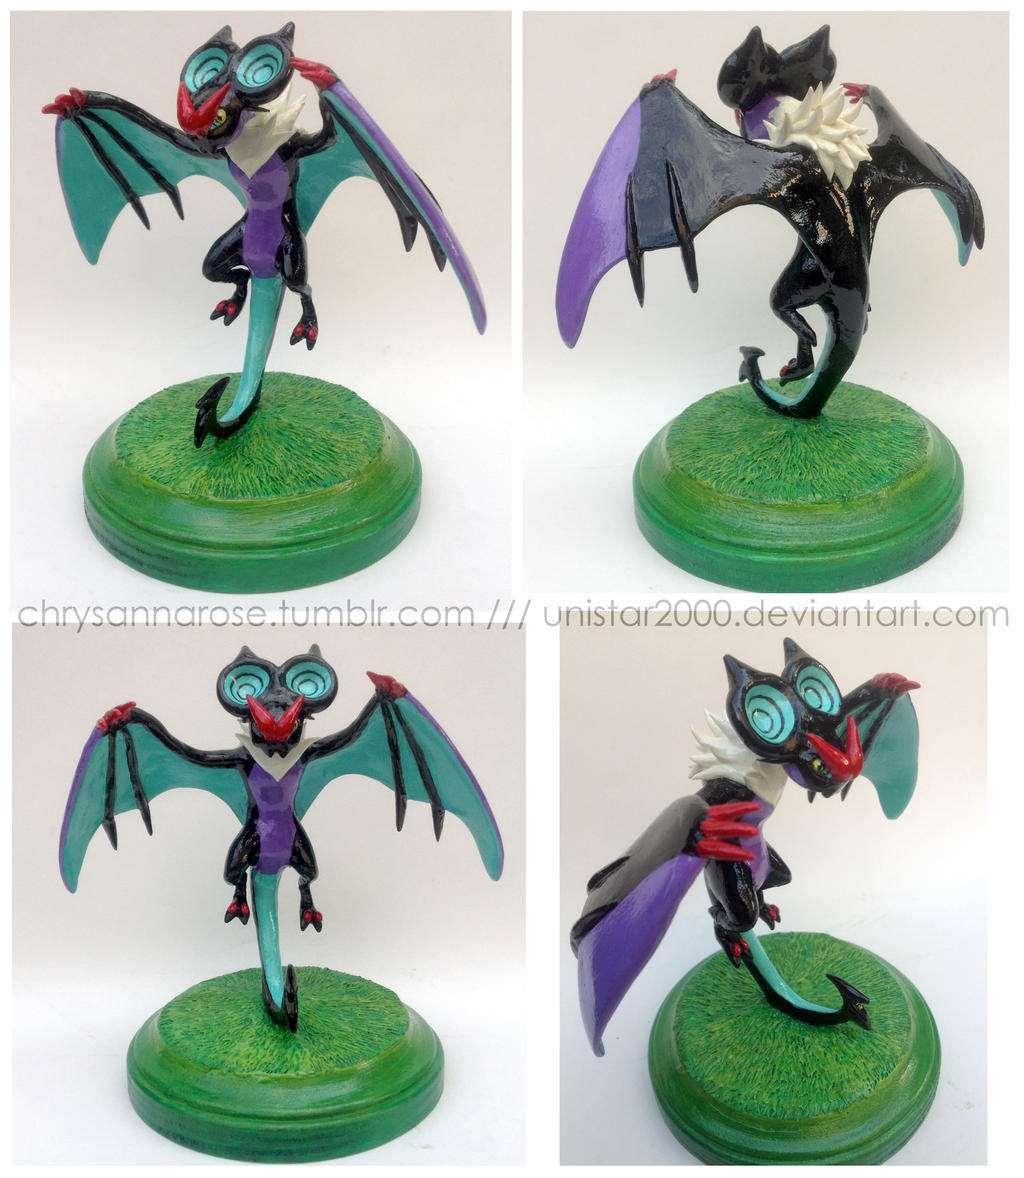 Noivern Sculpture by unistar2000